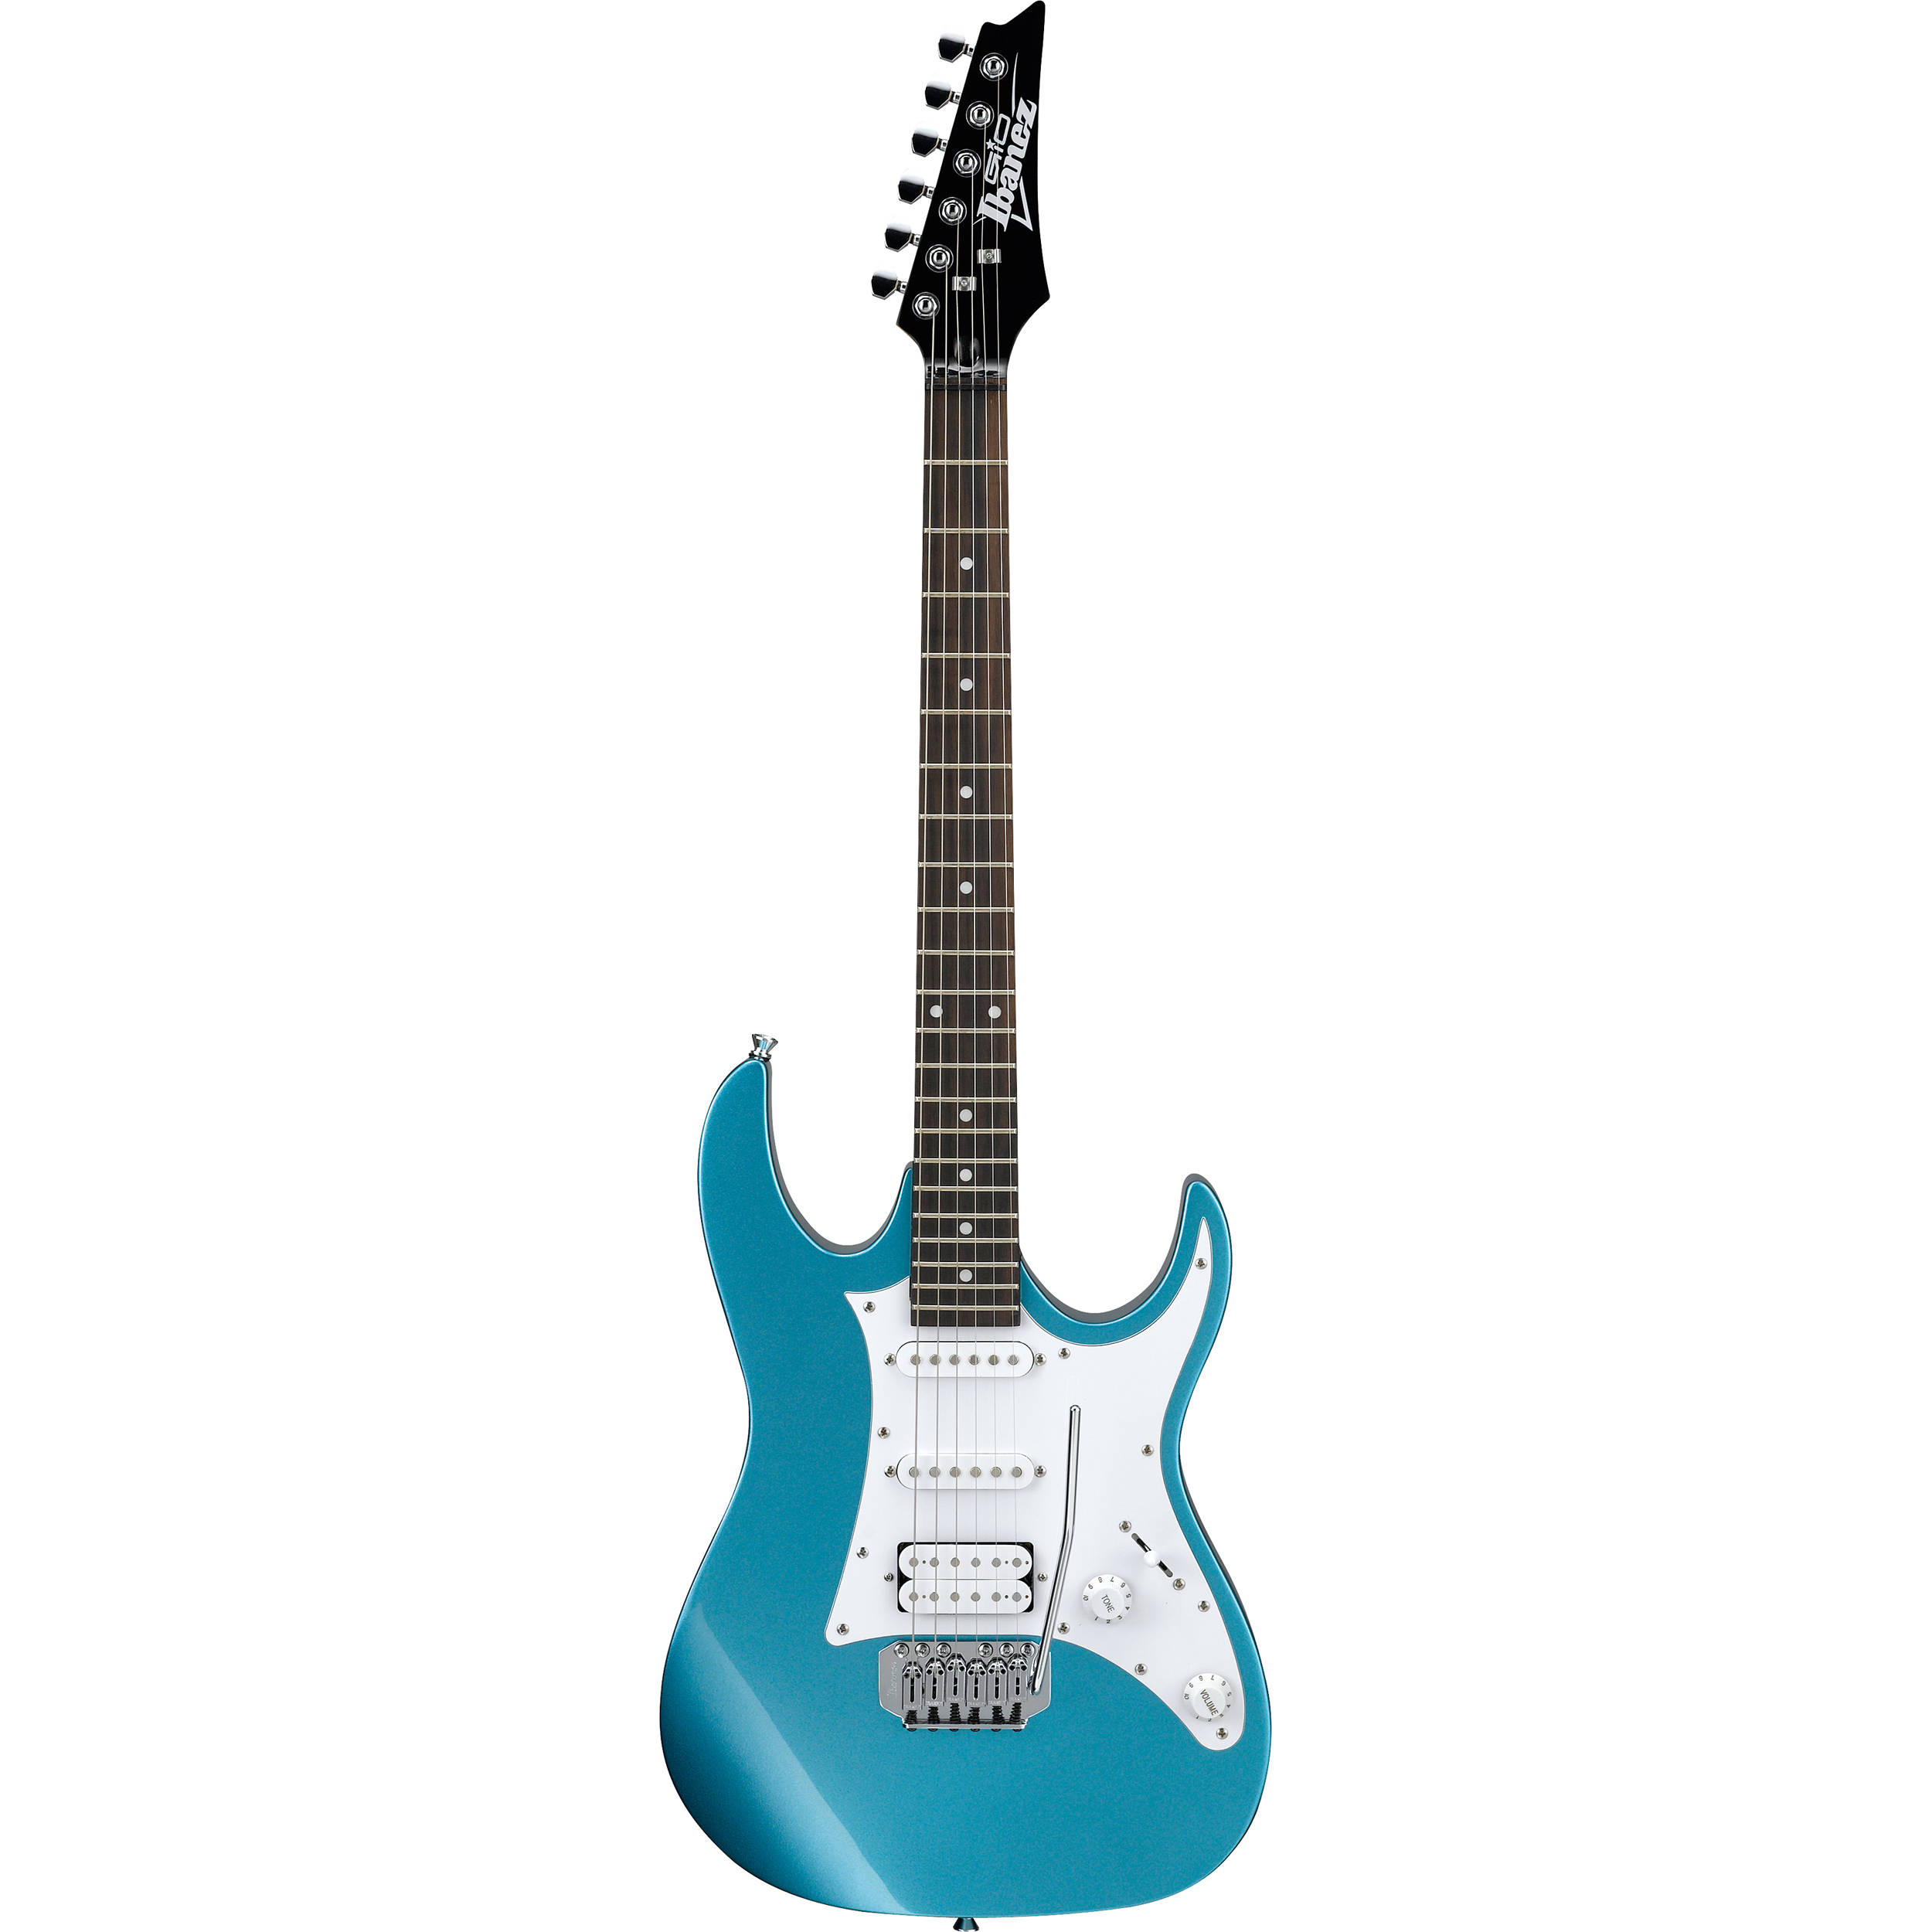 ibanez grx40z gio series electric guitar grx40zmlb b h photo. Black Bedroom Furniture Sets. Home Design Ideas